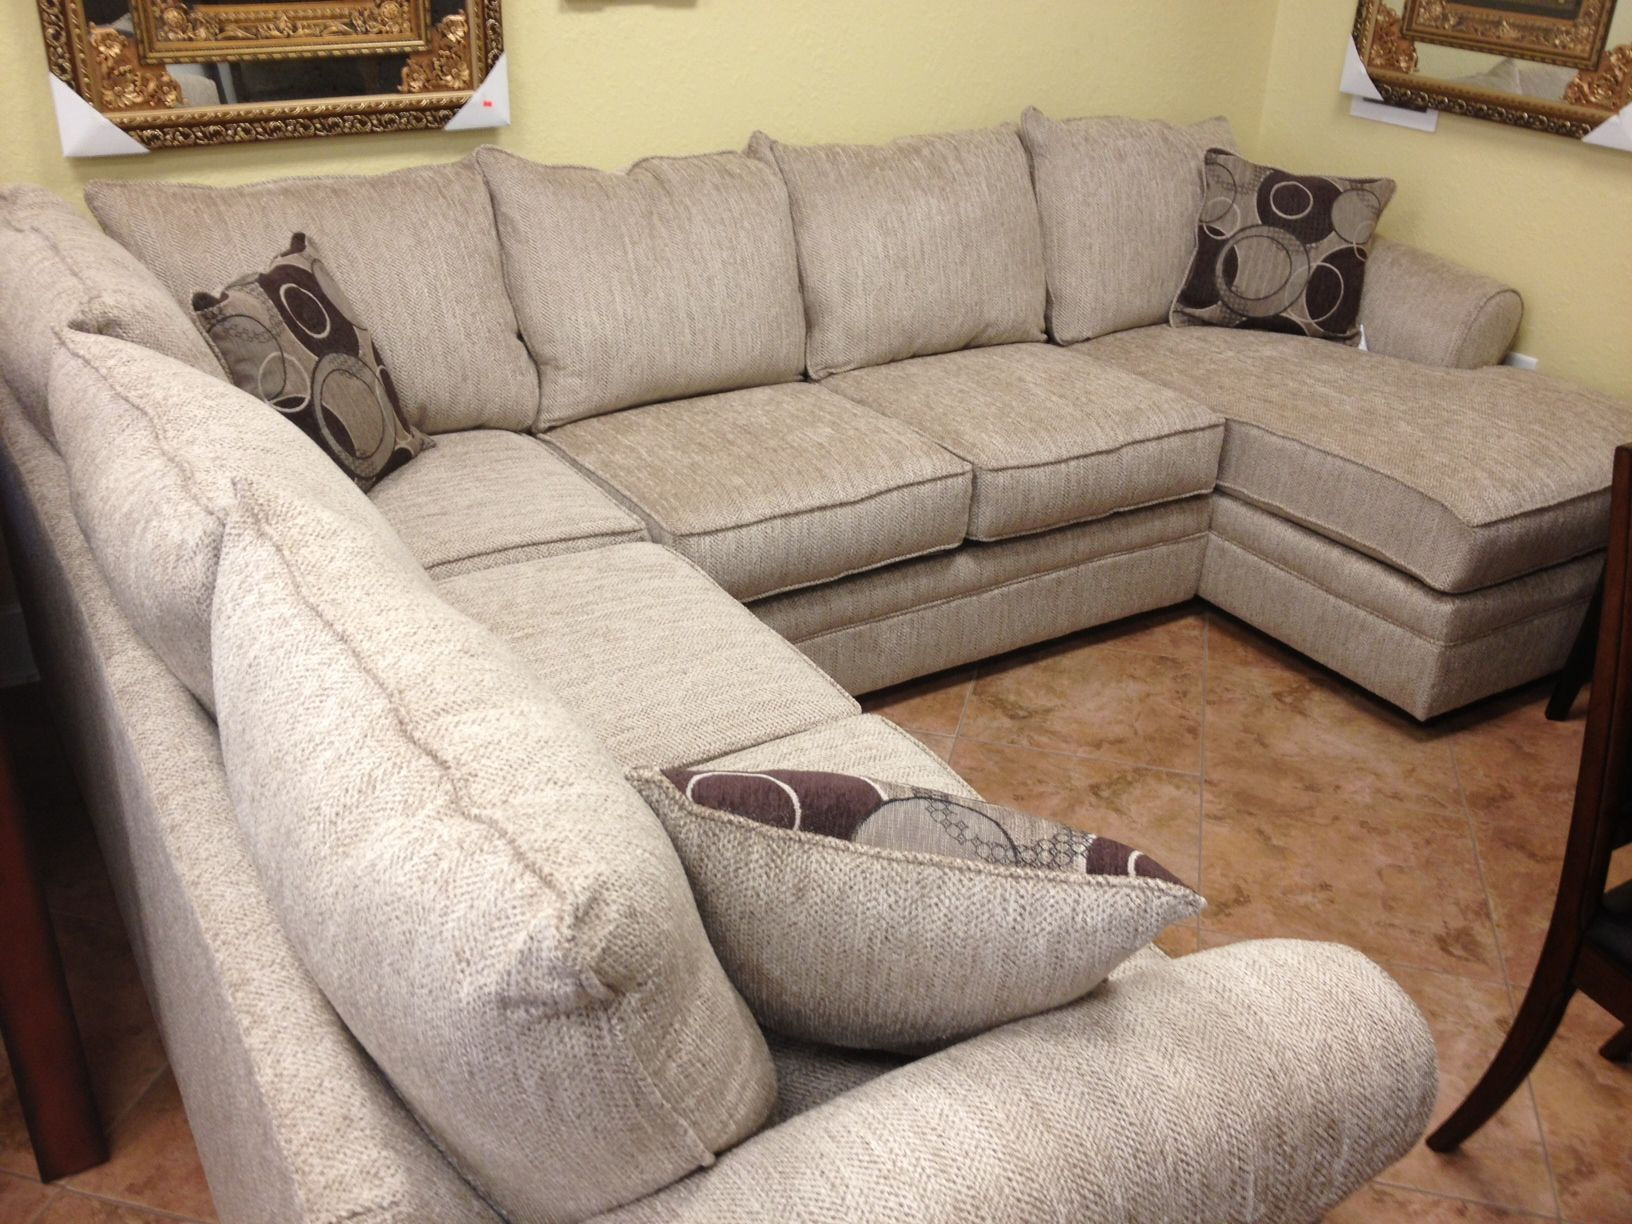 ly $899 for this quality sectional upholstered in a beautiful